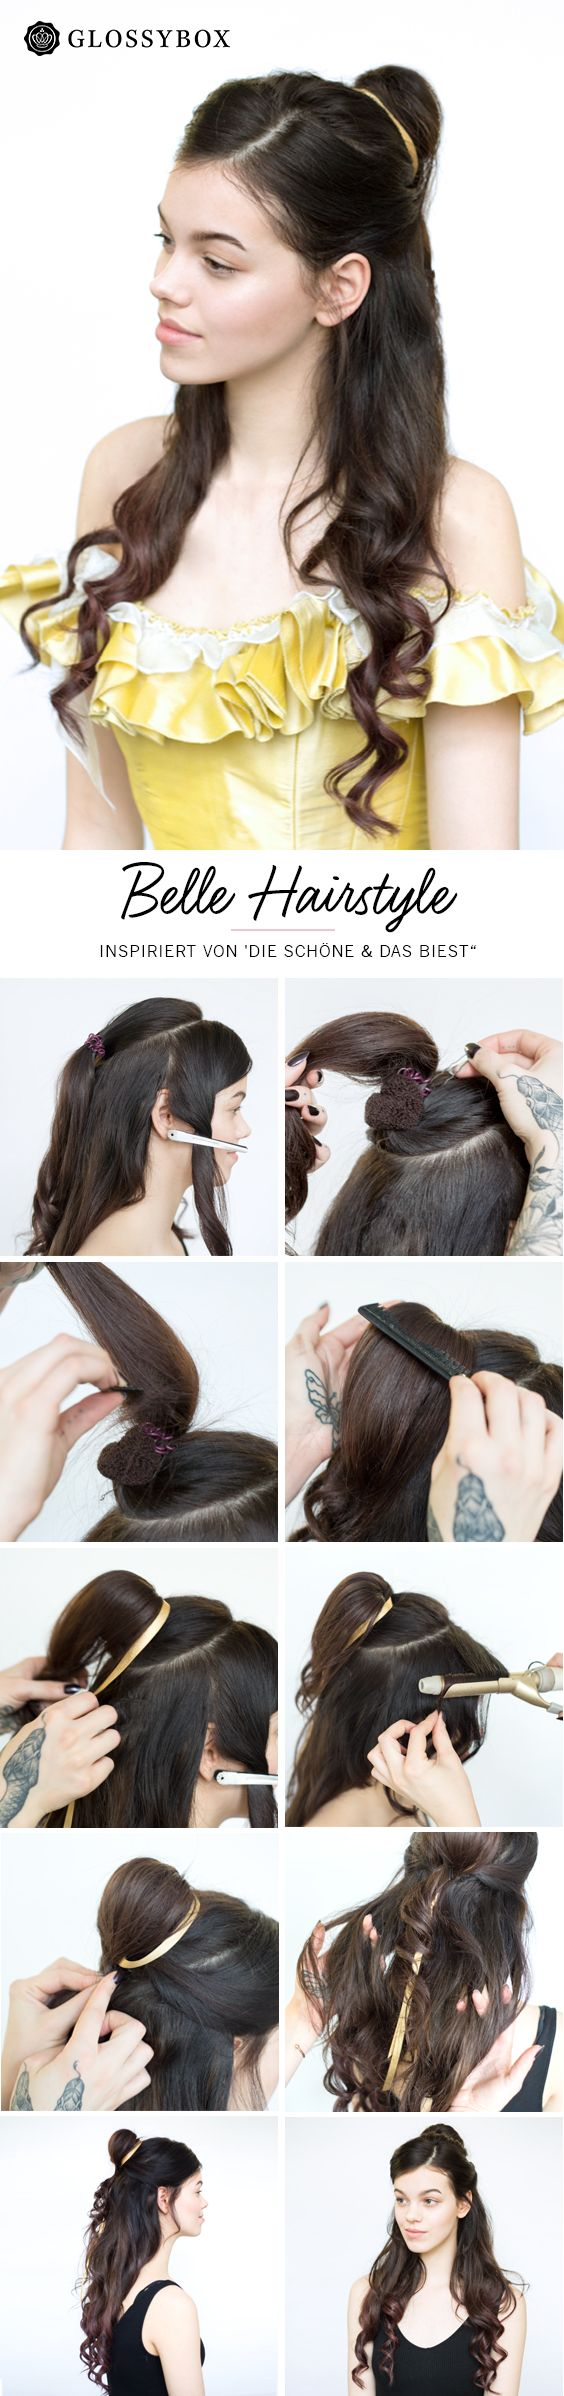 Belle, Hair, Tutorial, Beauty and the Beast, die Schöne und das Biest